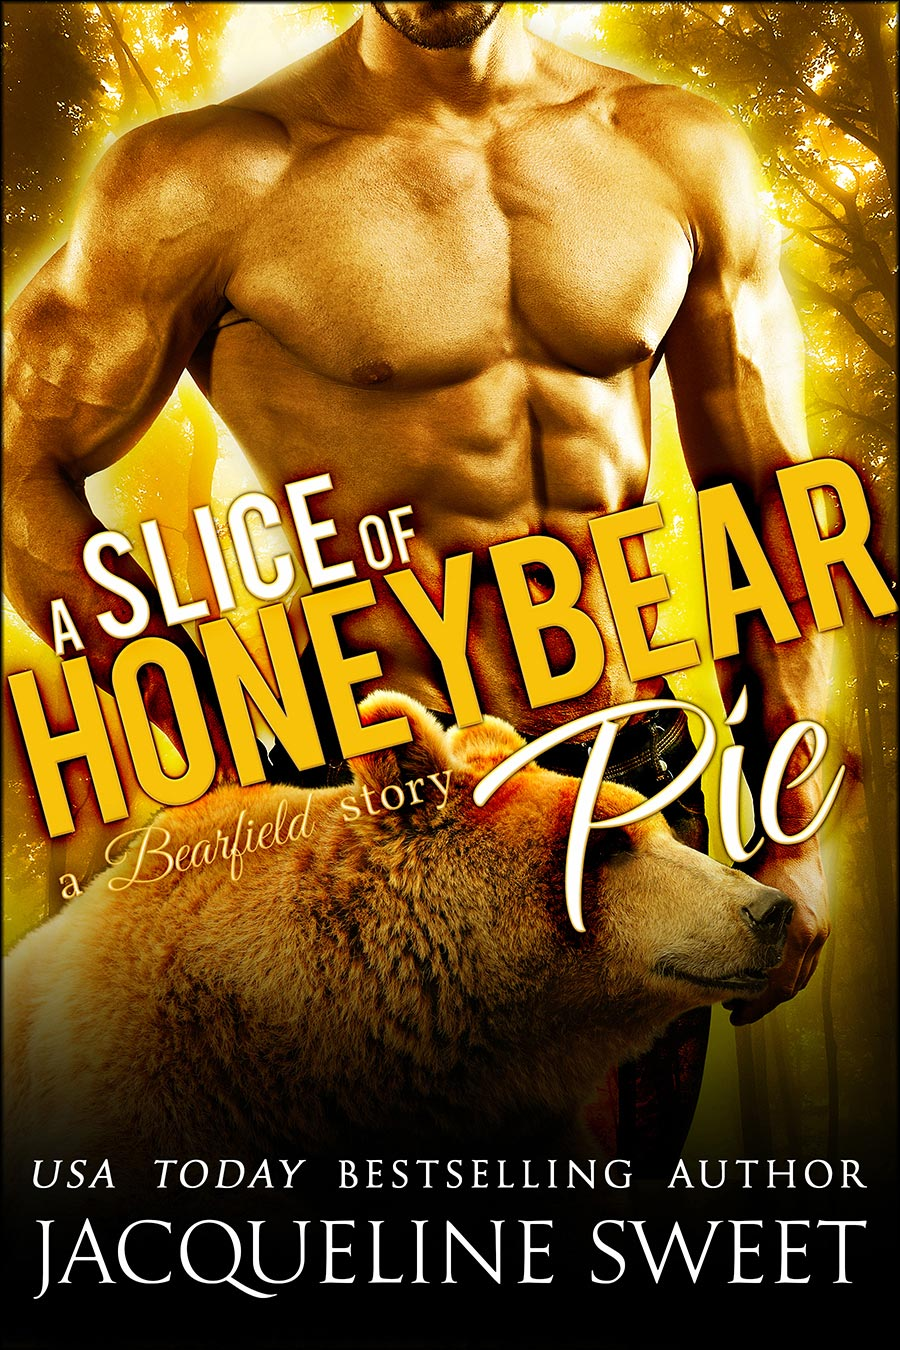 a-slice-of-honeybear-pie---JACQUELINE-SWEET---new-cover.jpg